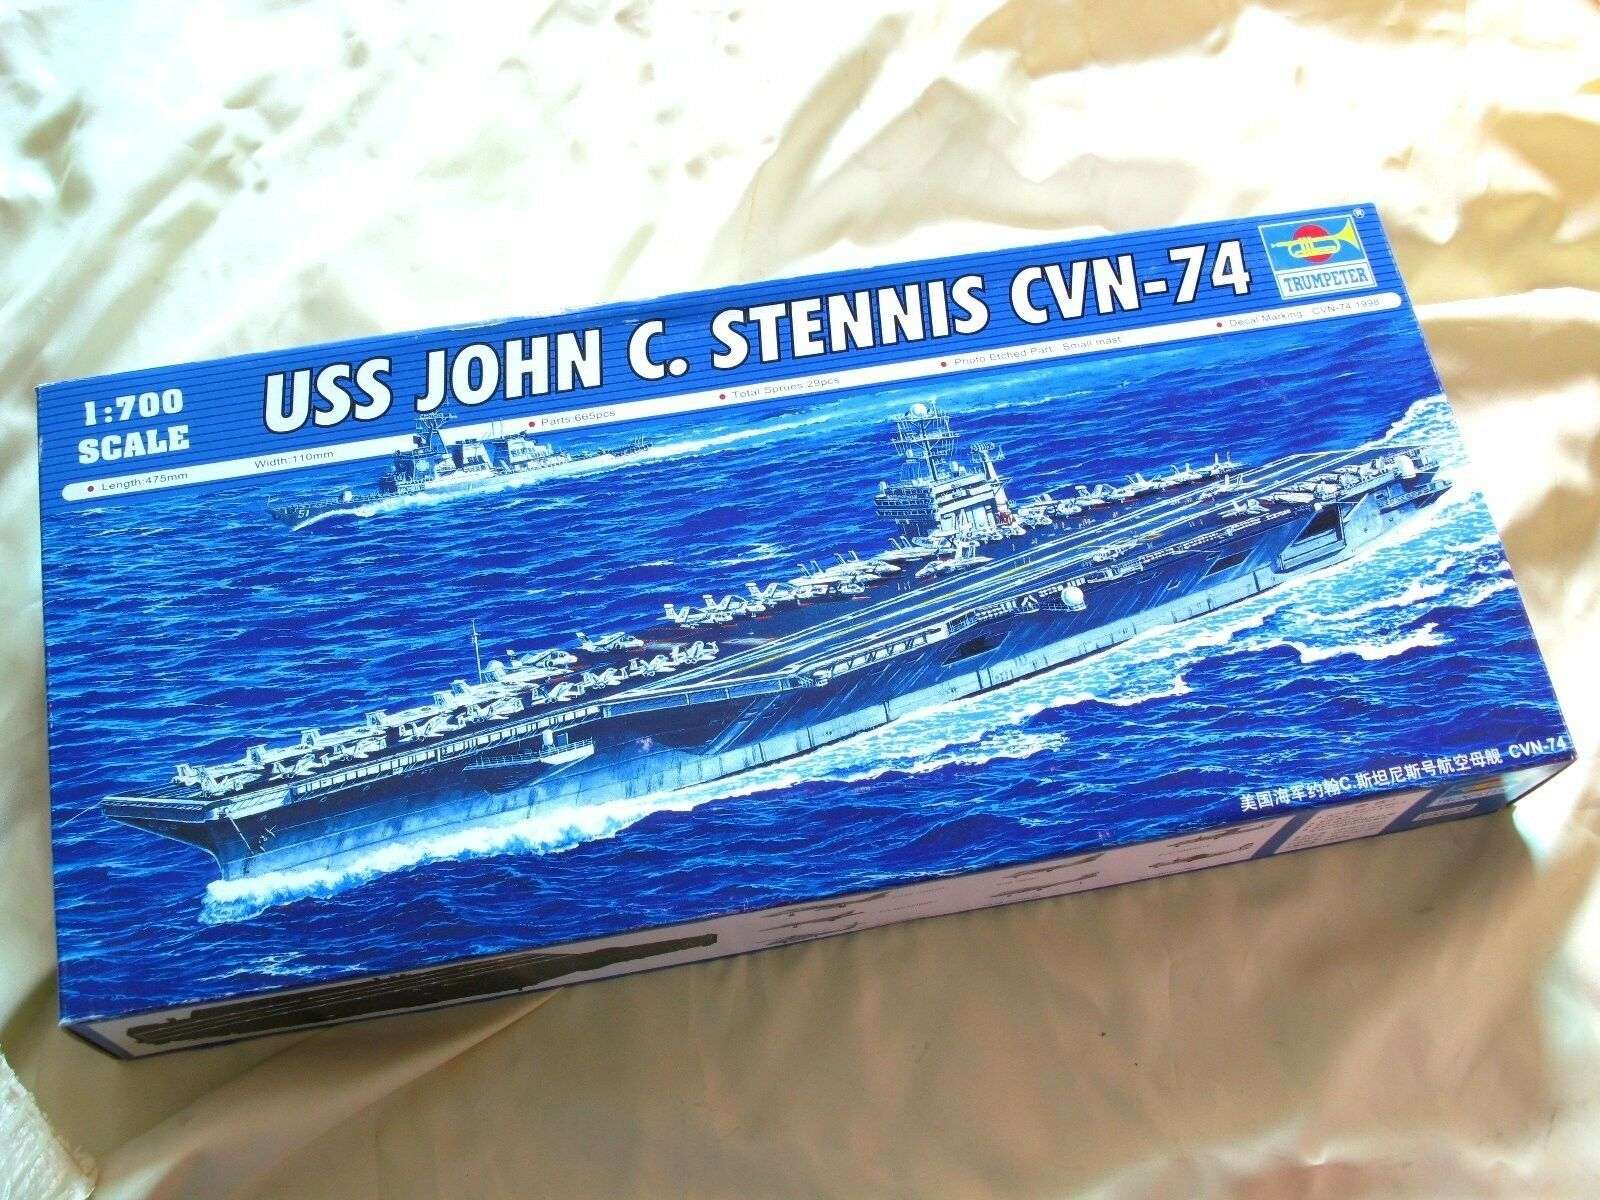 05733 Trumpeter 1 700 Model USS John C. Stennis CVN-74 Aircraft Carrier Static